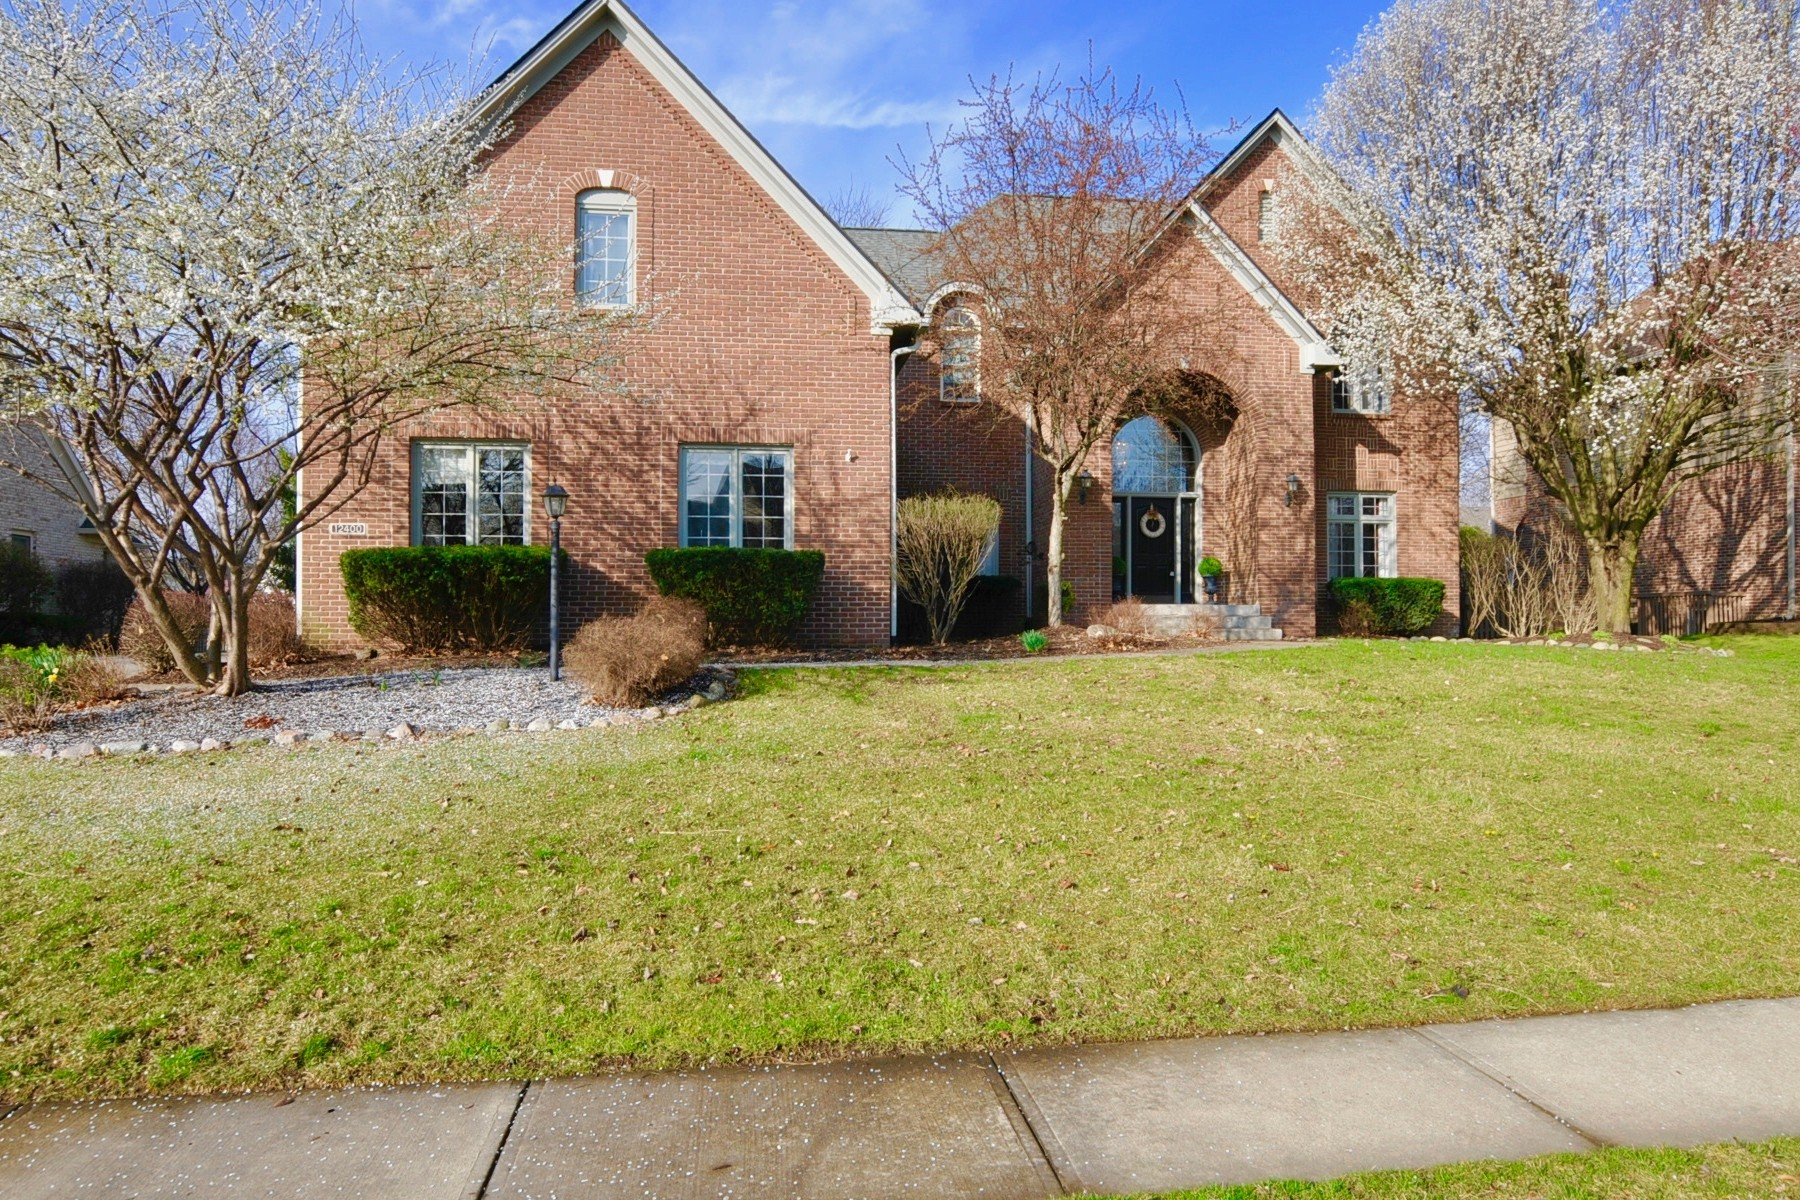 Single Family Home for Sale at Graceful and Classic Bayhill Home 12400 Pebblepointe Pass Carmel, Indiana 46033 United States